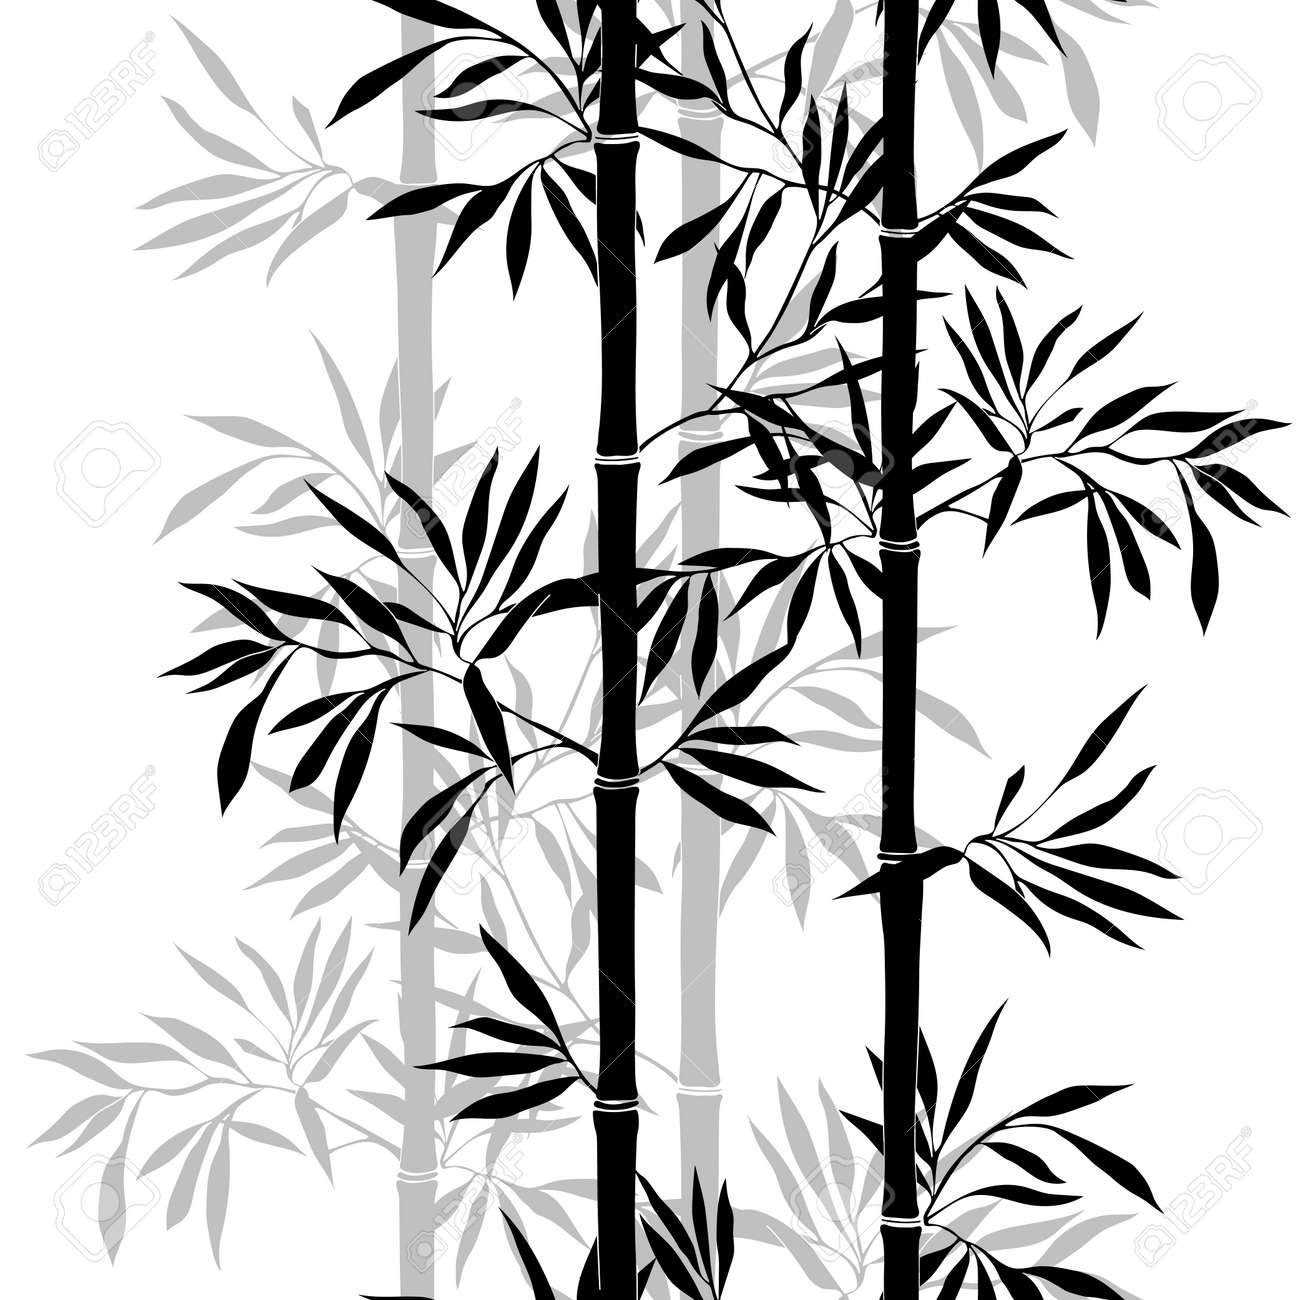 Seamless pattern. Bamboo leaf background. Floral seamless texture with leaves. Vector illustration - 41305484